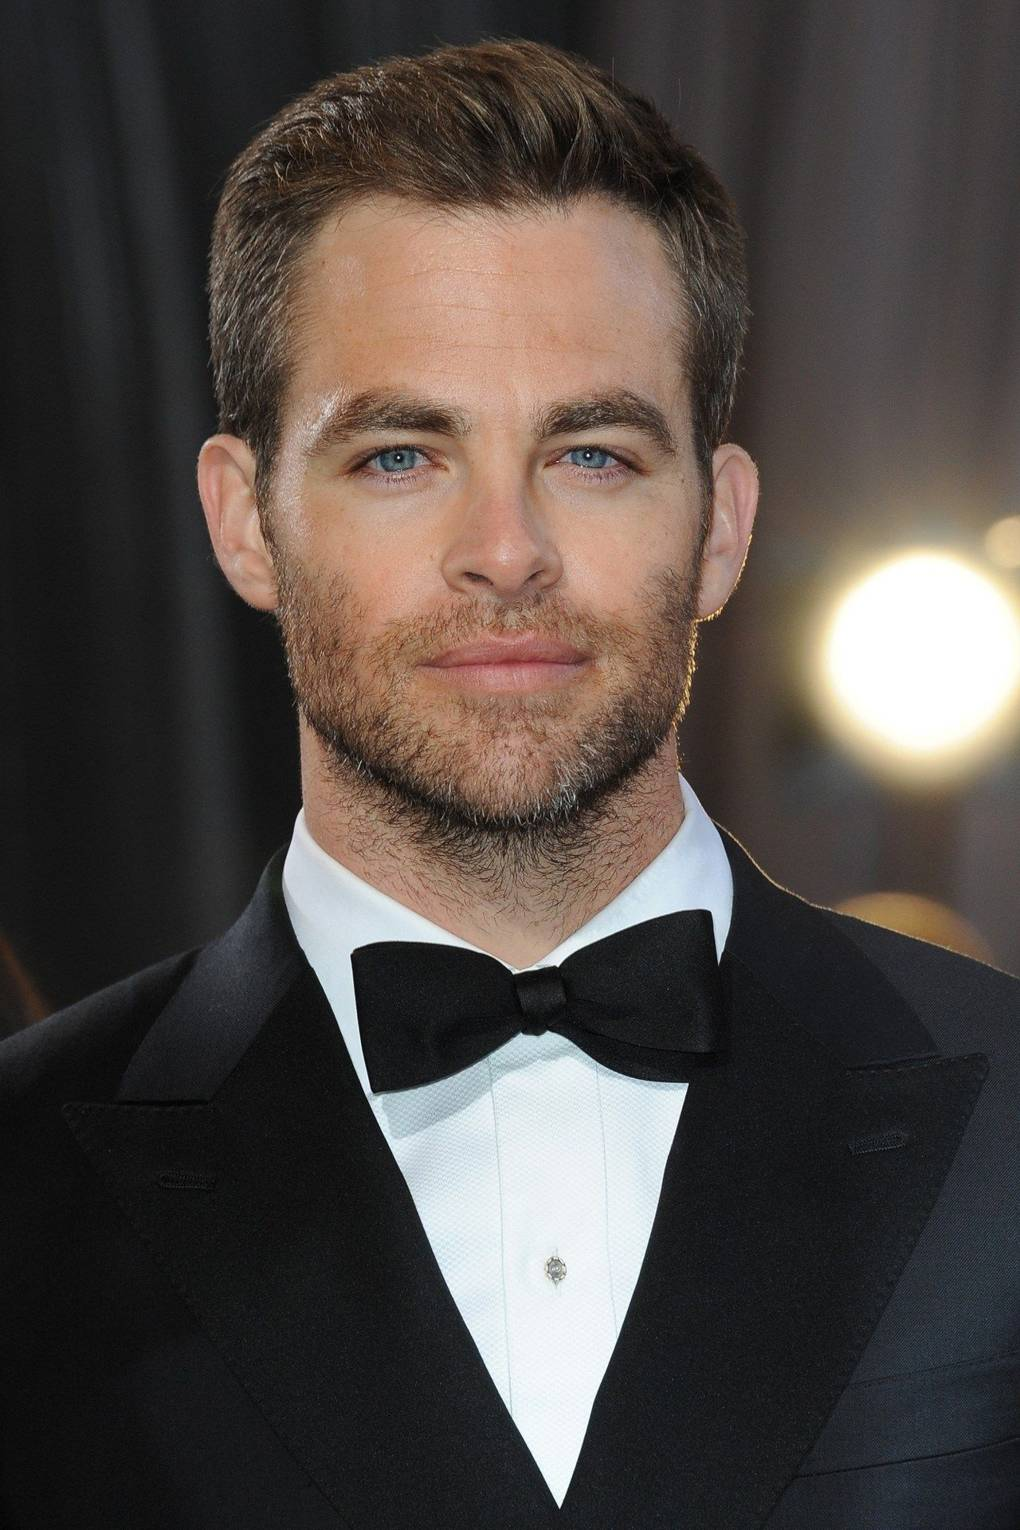 The Best Mens Black Tie Hairstyles Whatever Length Youre Rocking